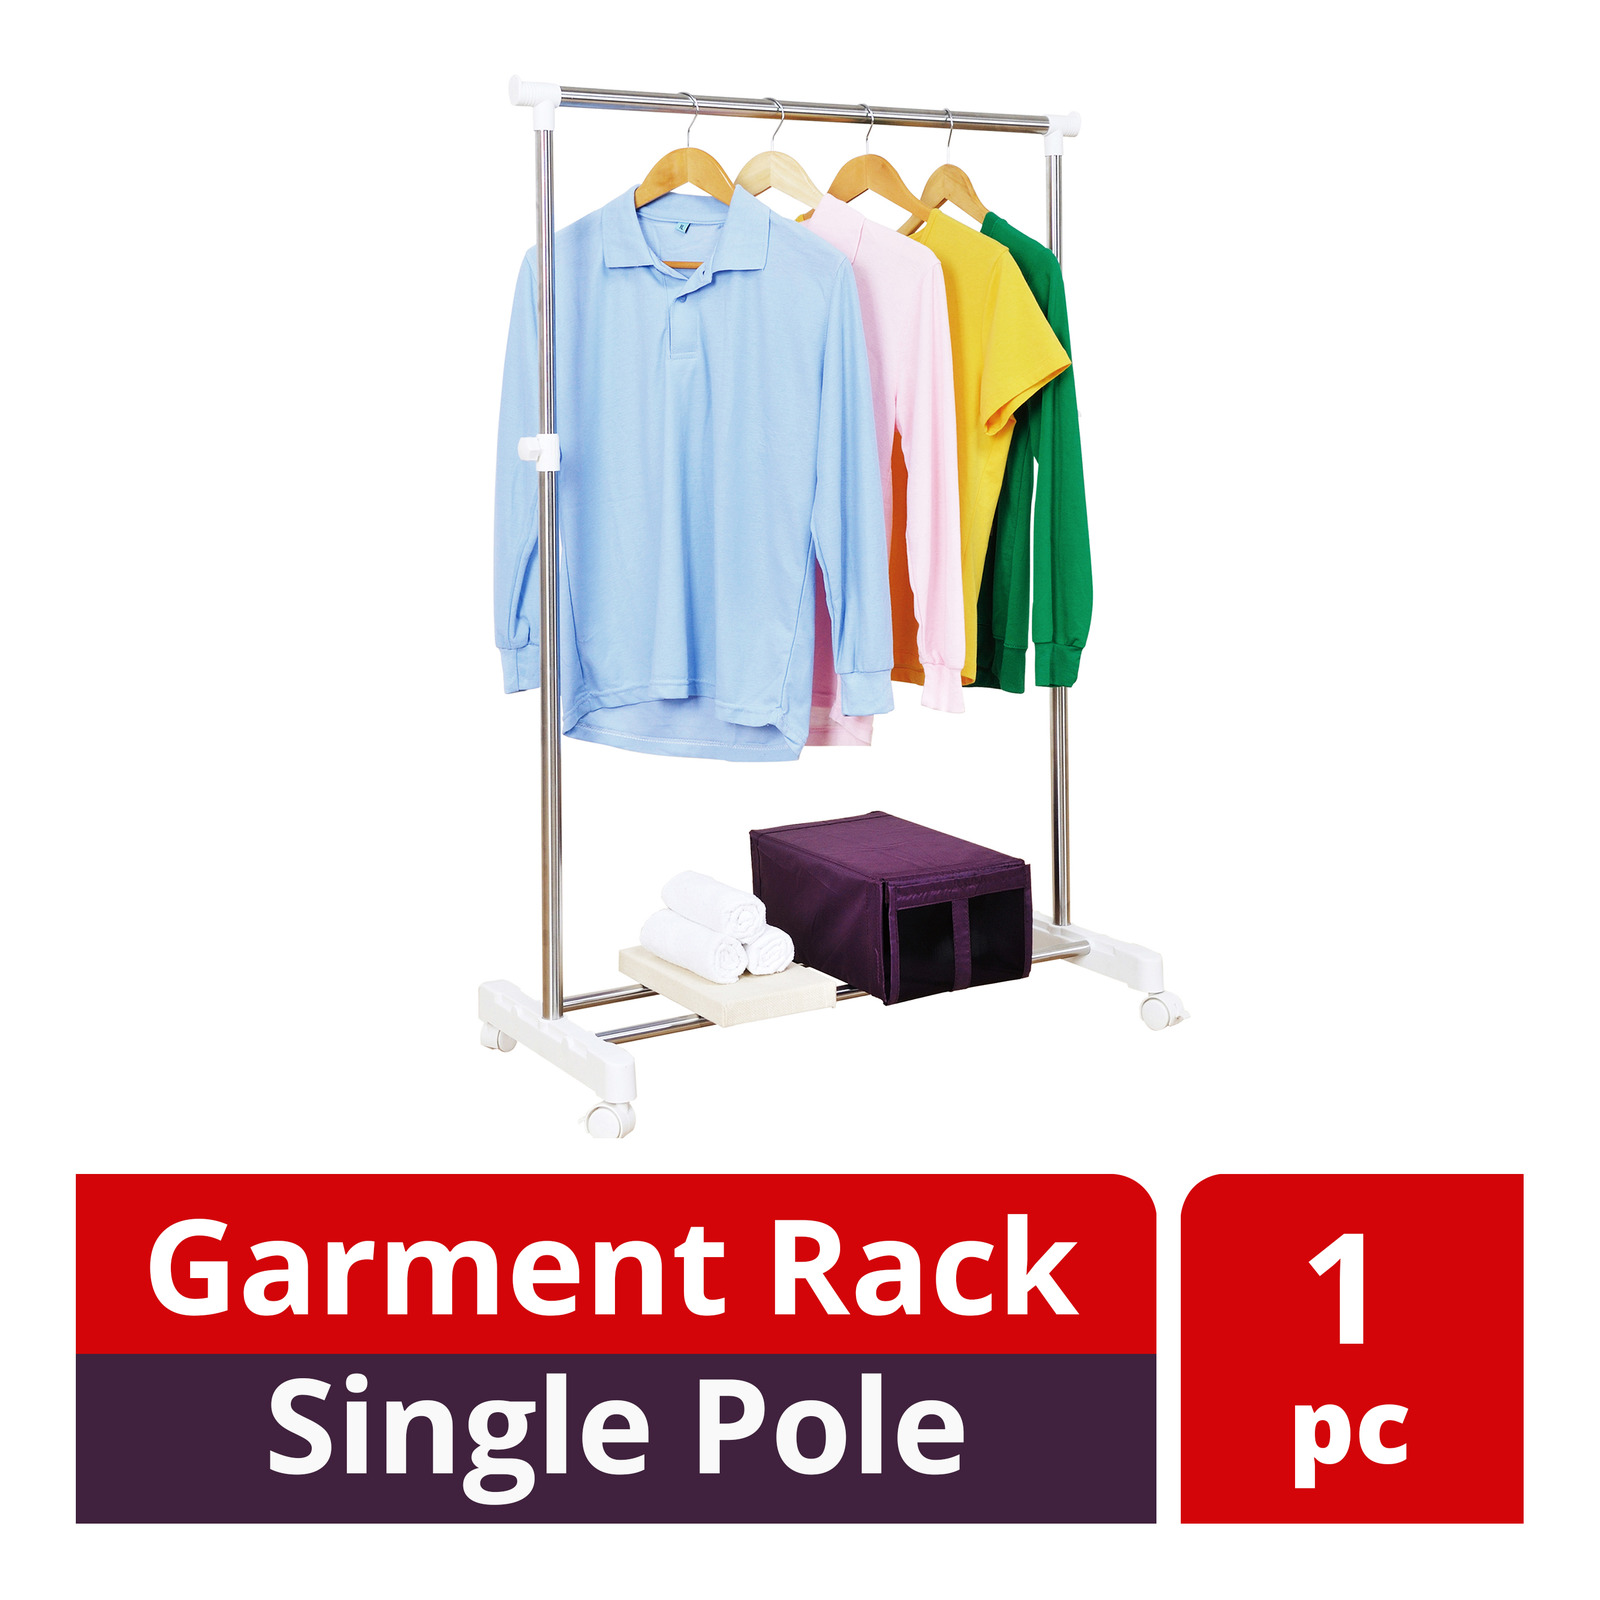 HomeProud Garment Rack - Single Pole